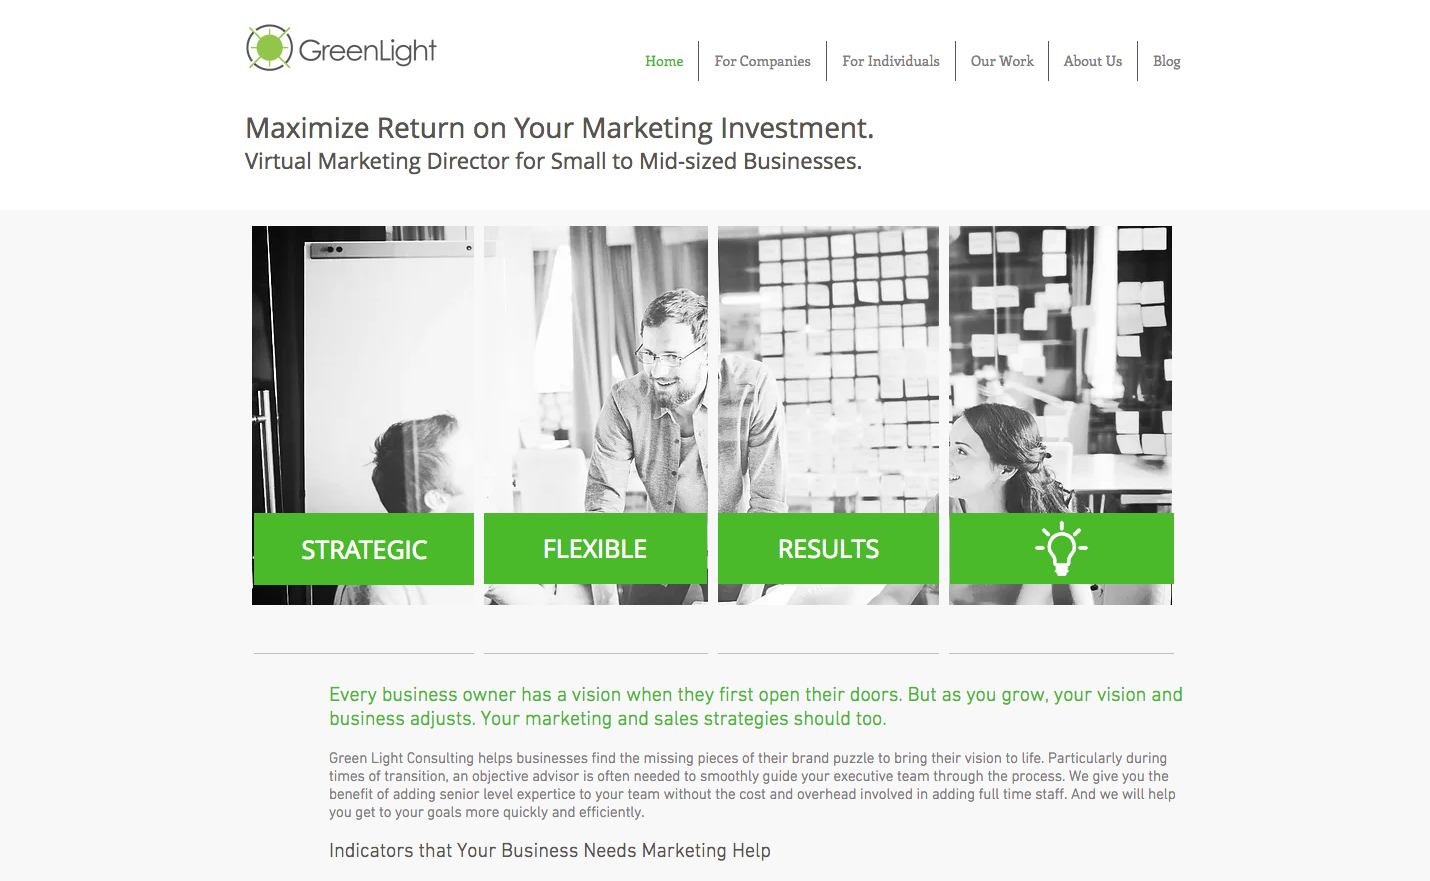 GreenLightIdeas.com